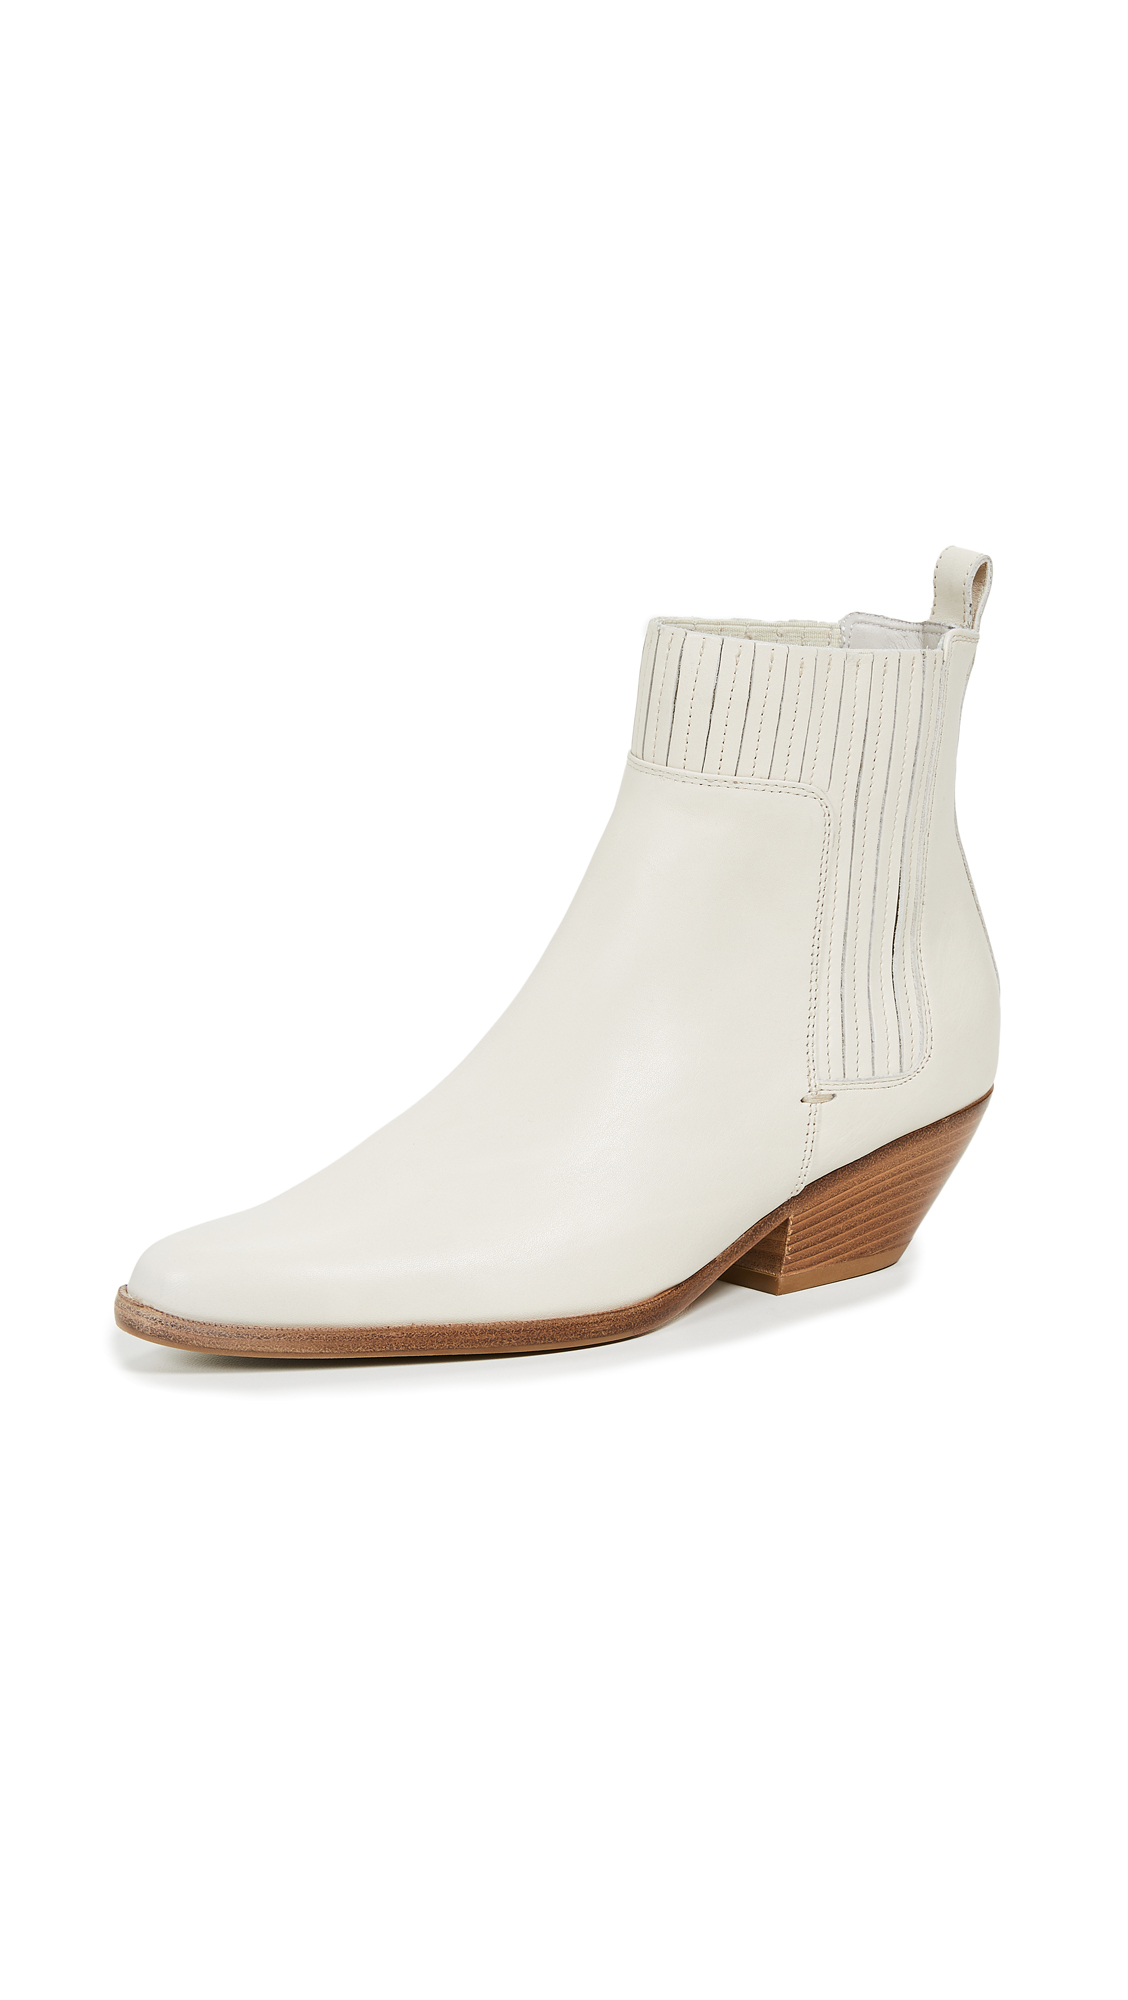 Vince Eckland Booties - Vintage White